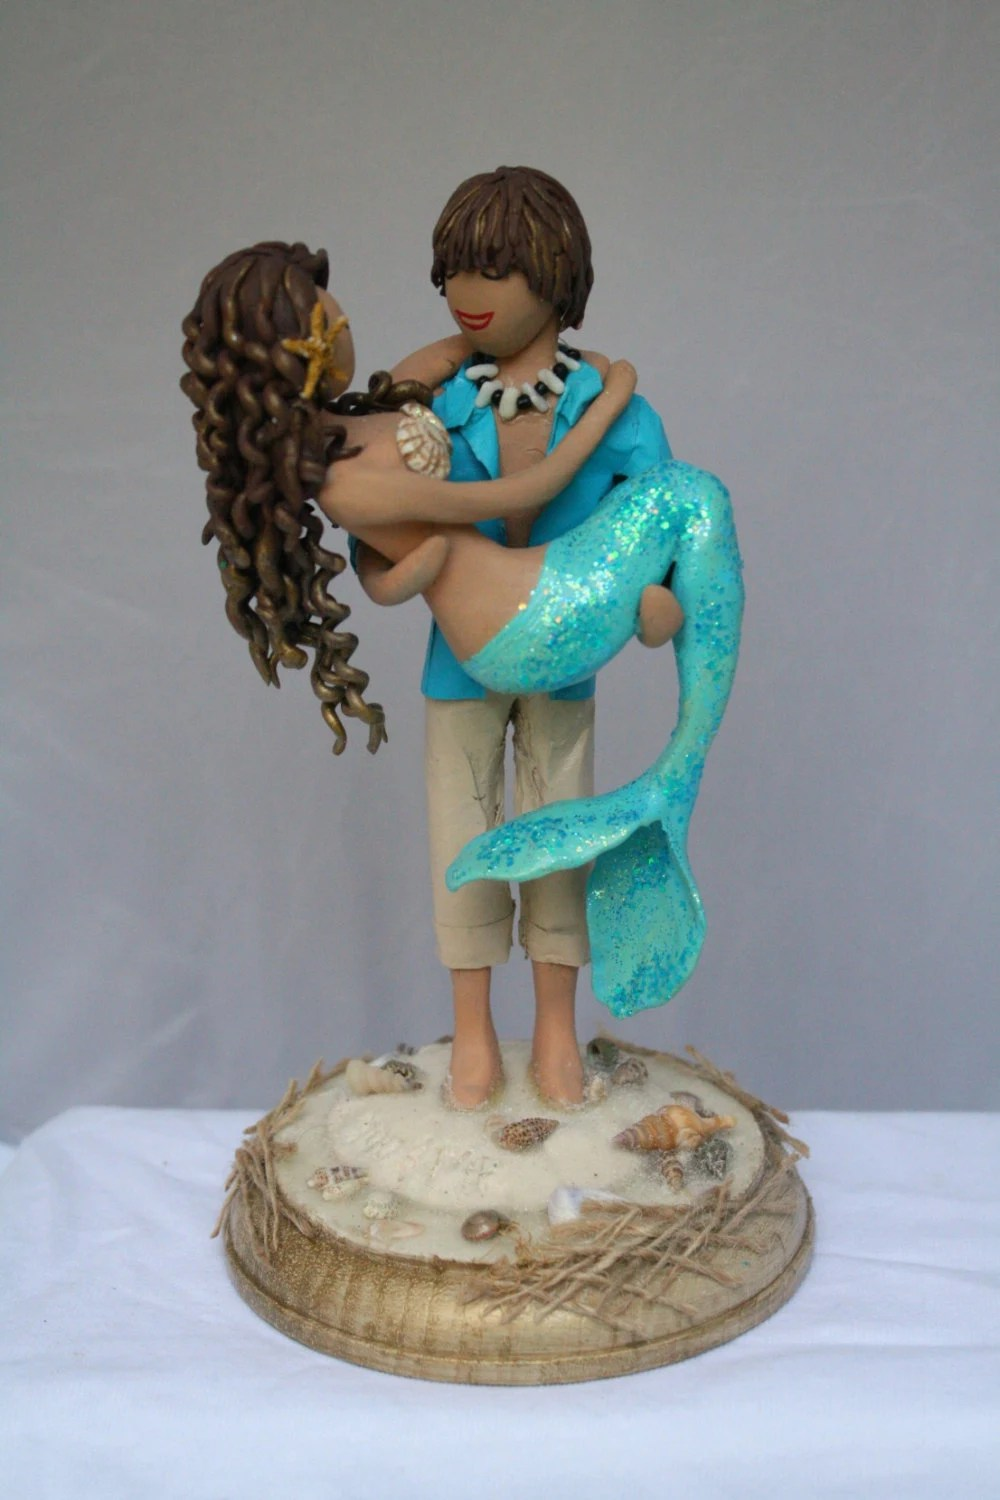 Mermaid and Beach Boy Wedding Cake Topper by CrimsonMuse